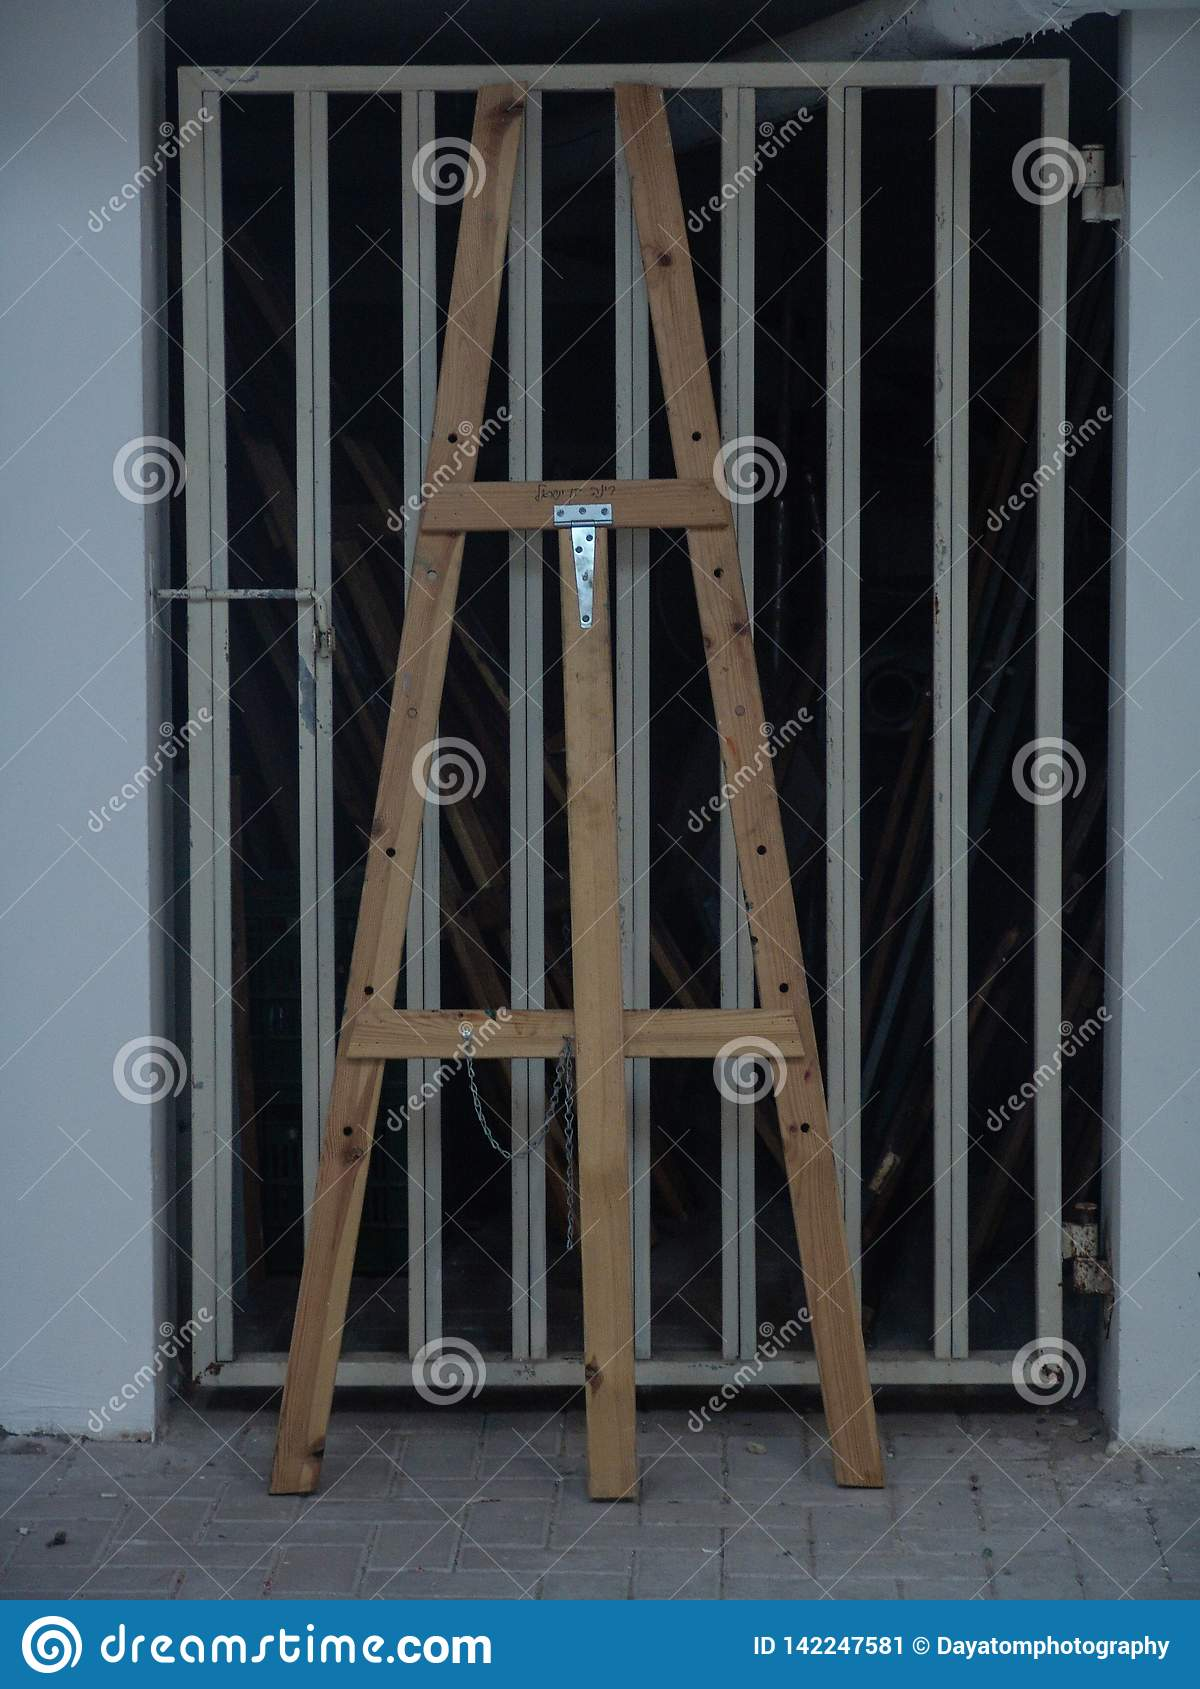 Wooden tall easel standing against a metal garage door in white